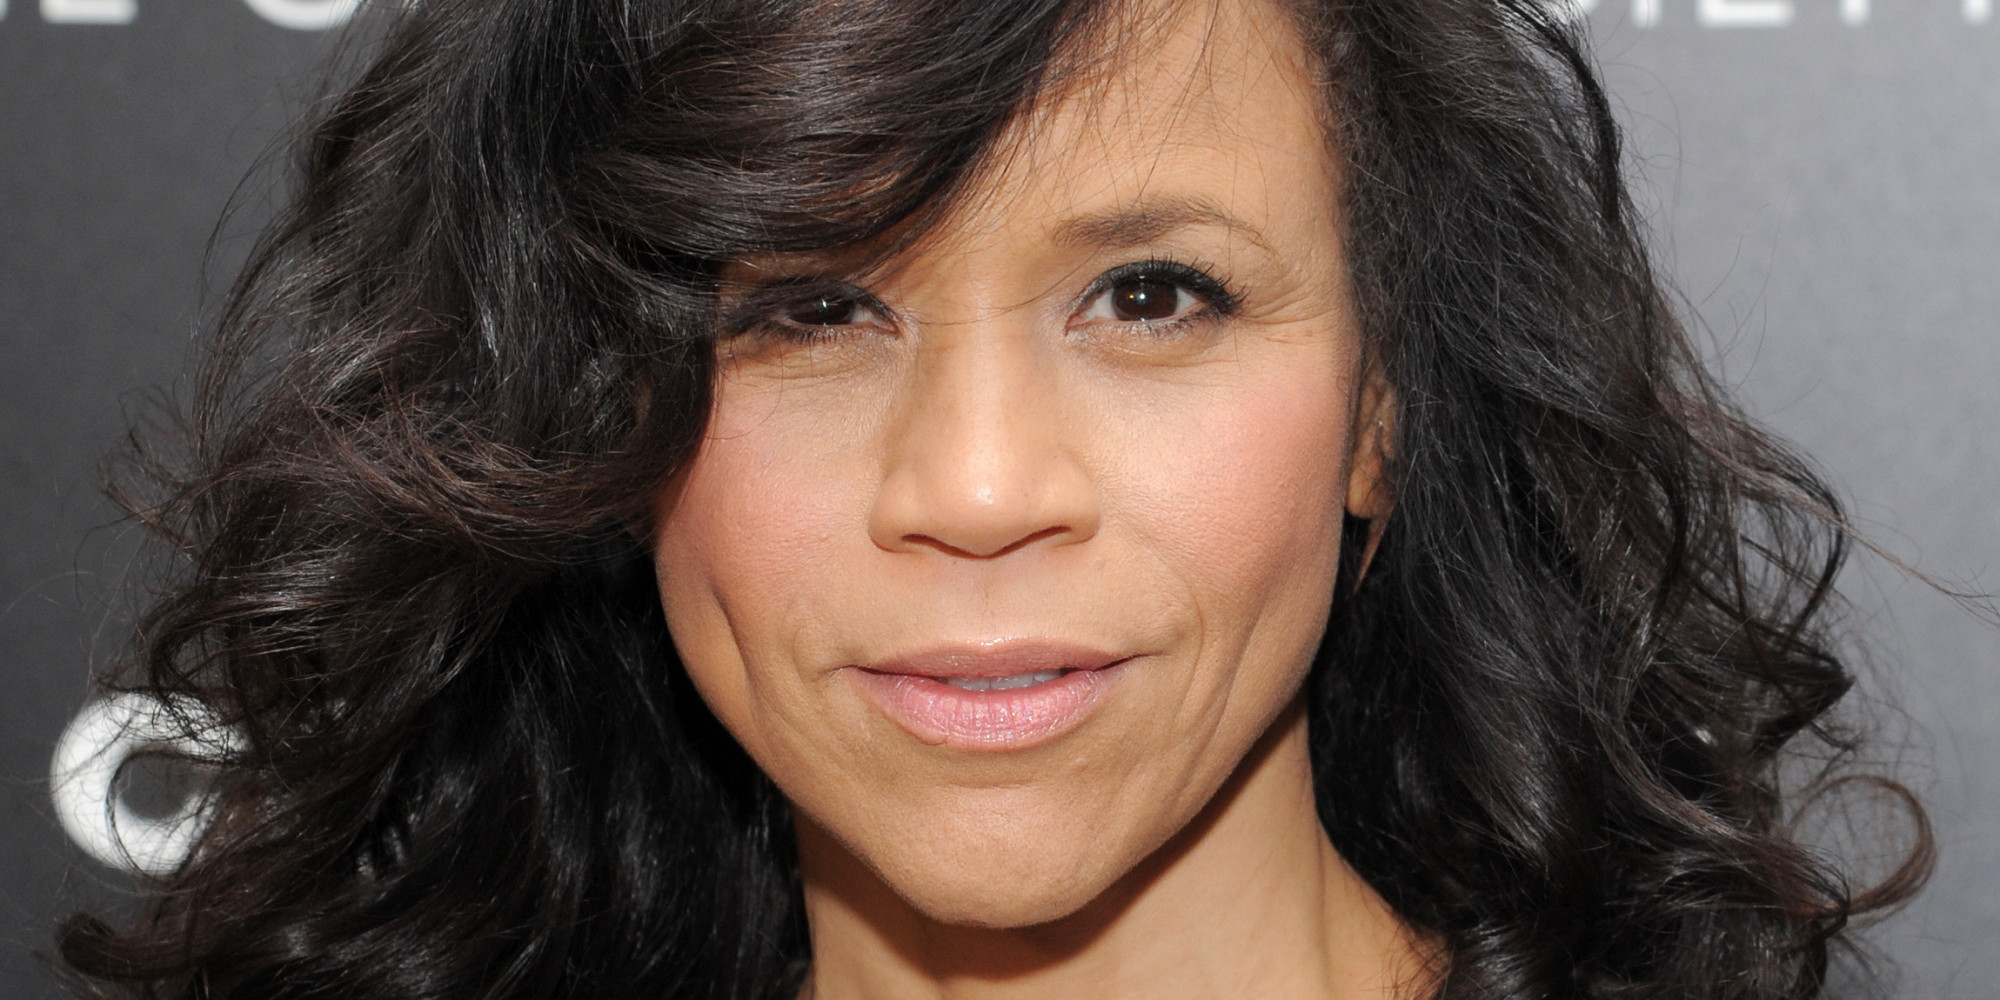 Rosie Perez Fired A Rep Who Told Her To Get Plastic Surgery To Pass For White'